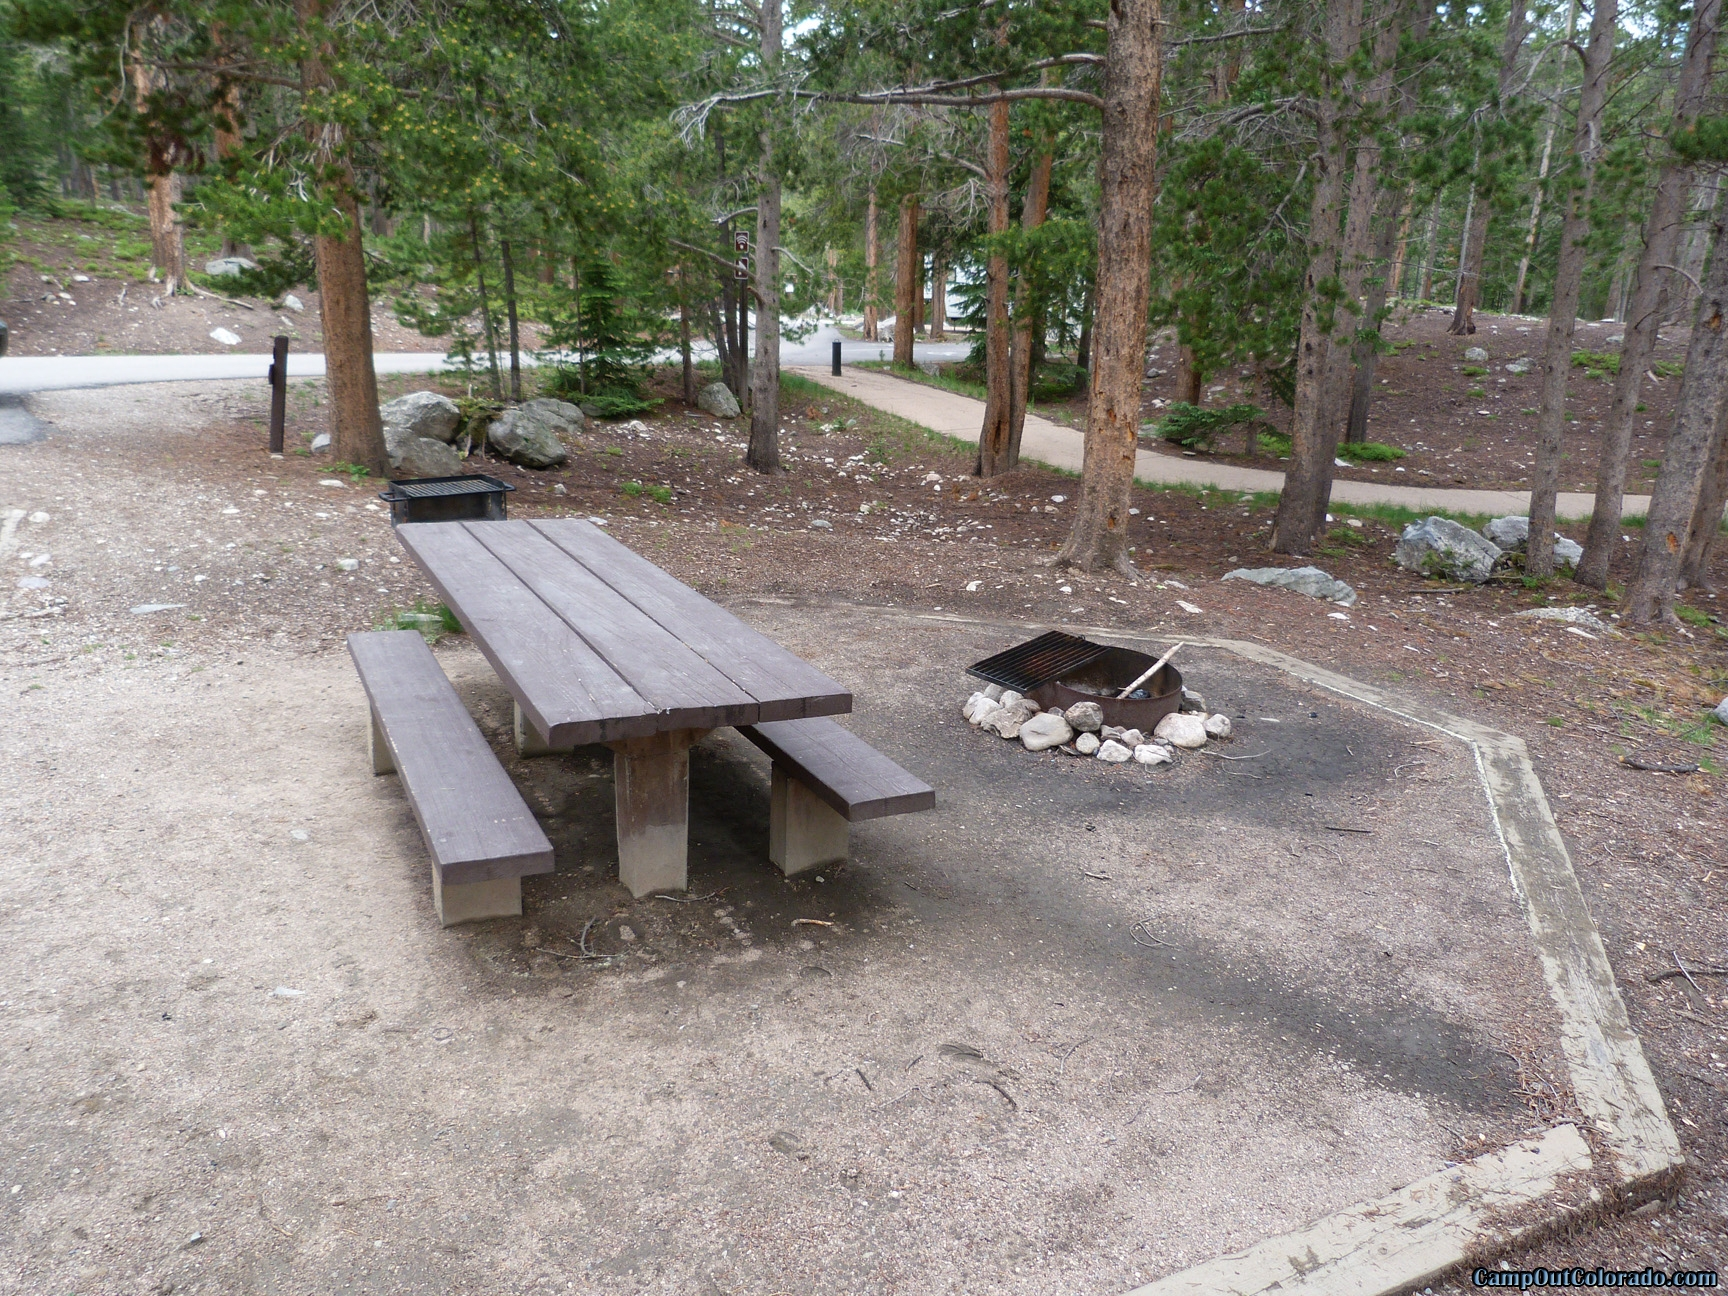 Camping Review of Chambers Lake Campground - Great High Altitude Camping